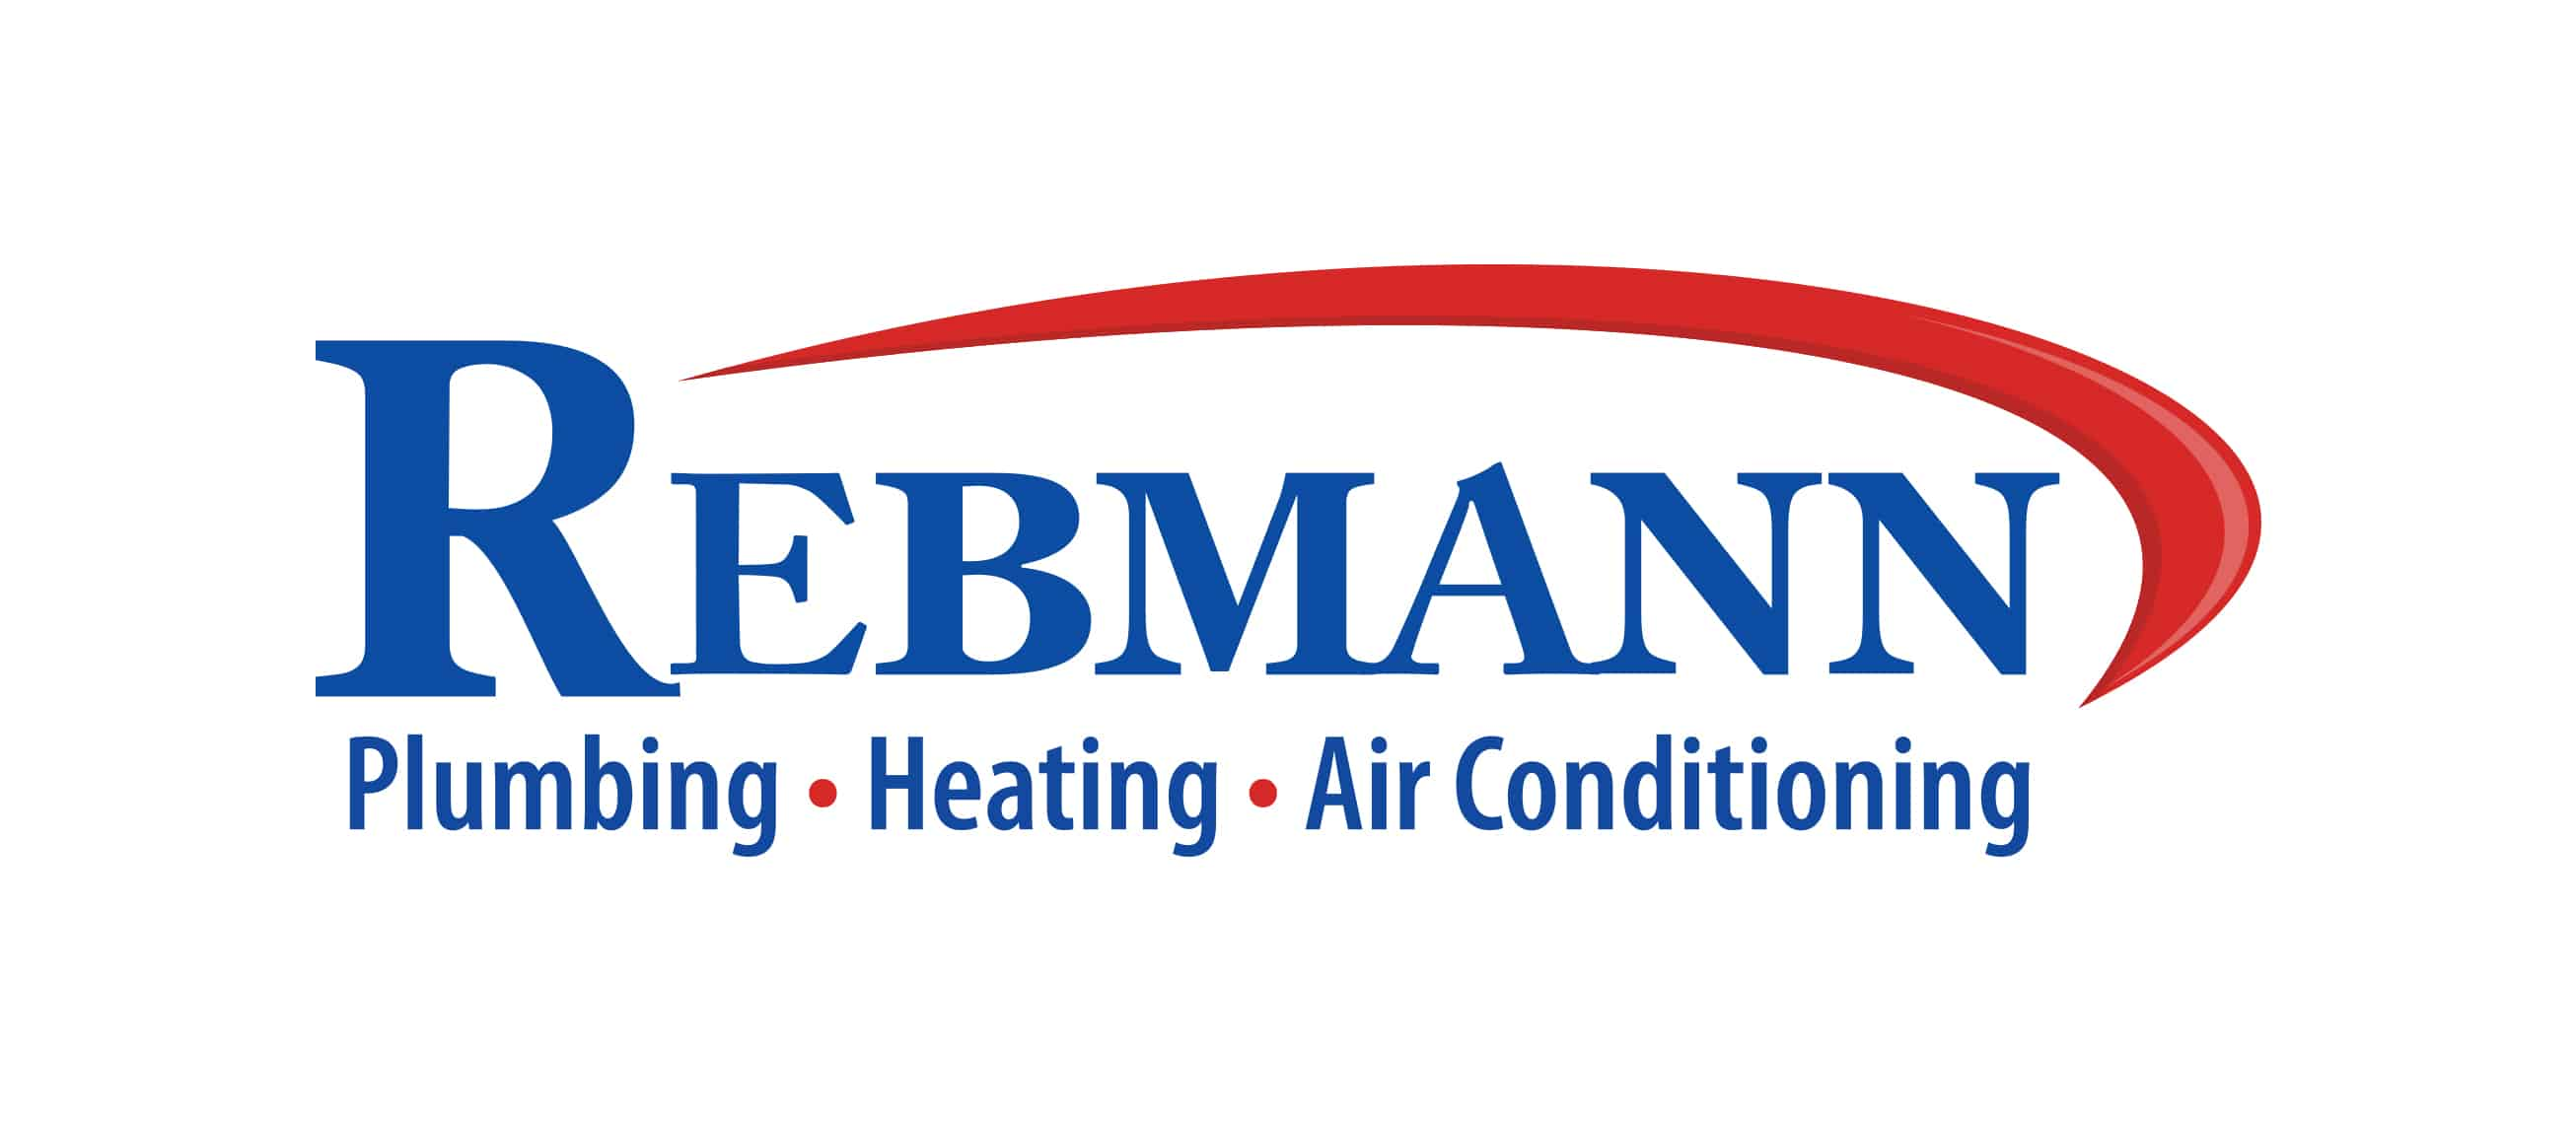 Plumbing Furnace Boiler And Ac Repair In Long Island